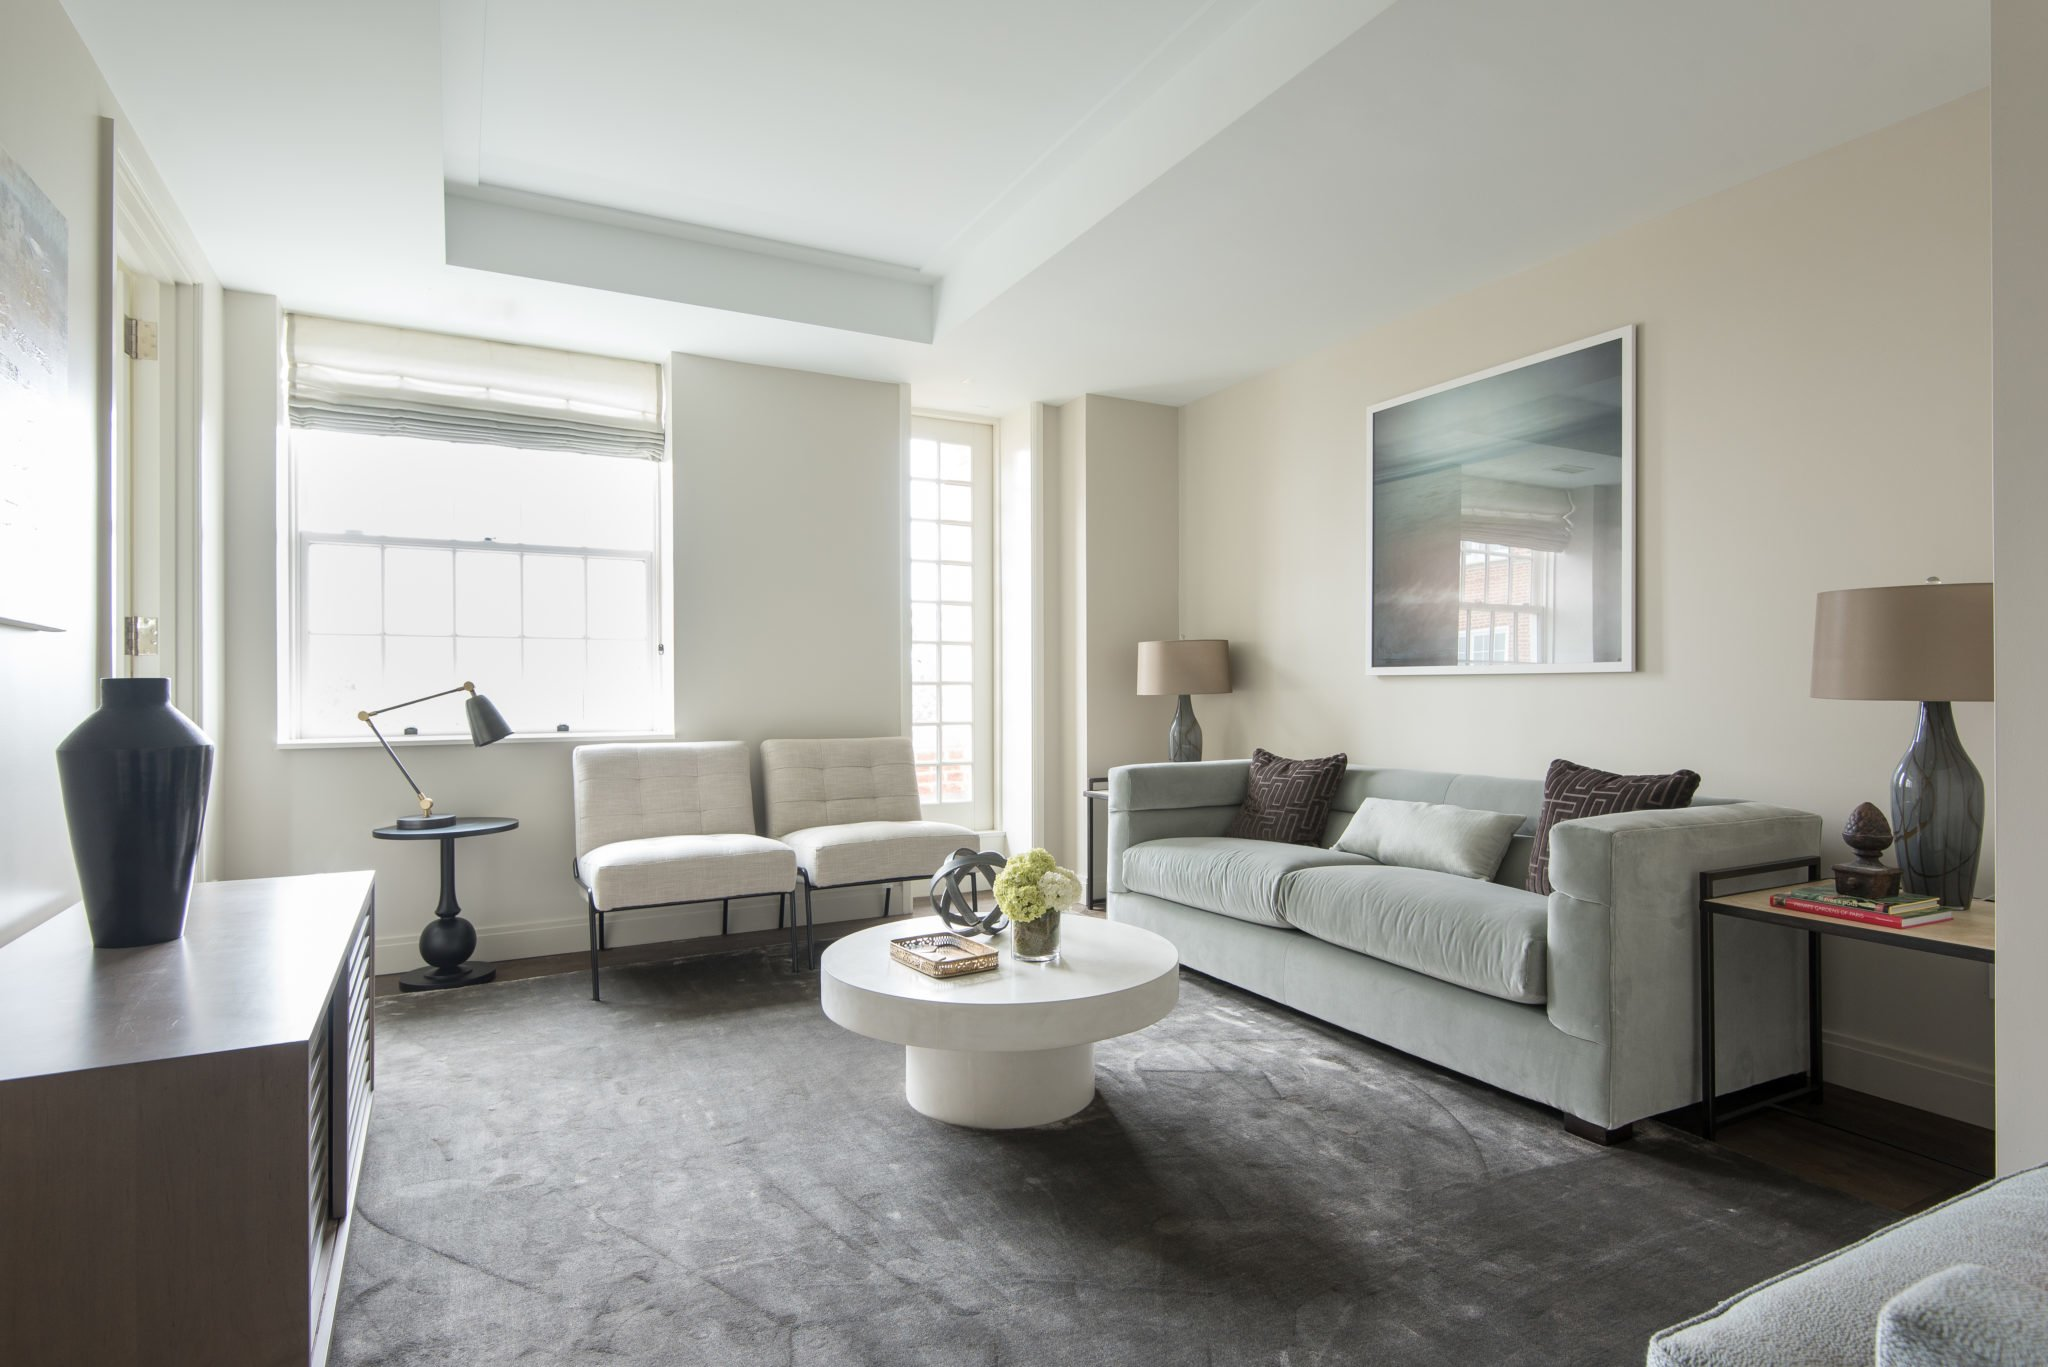 An Inside Look at the Luxury Residences of Wardman Tower